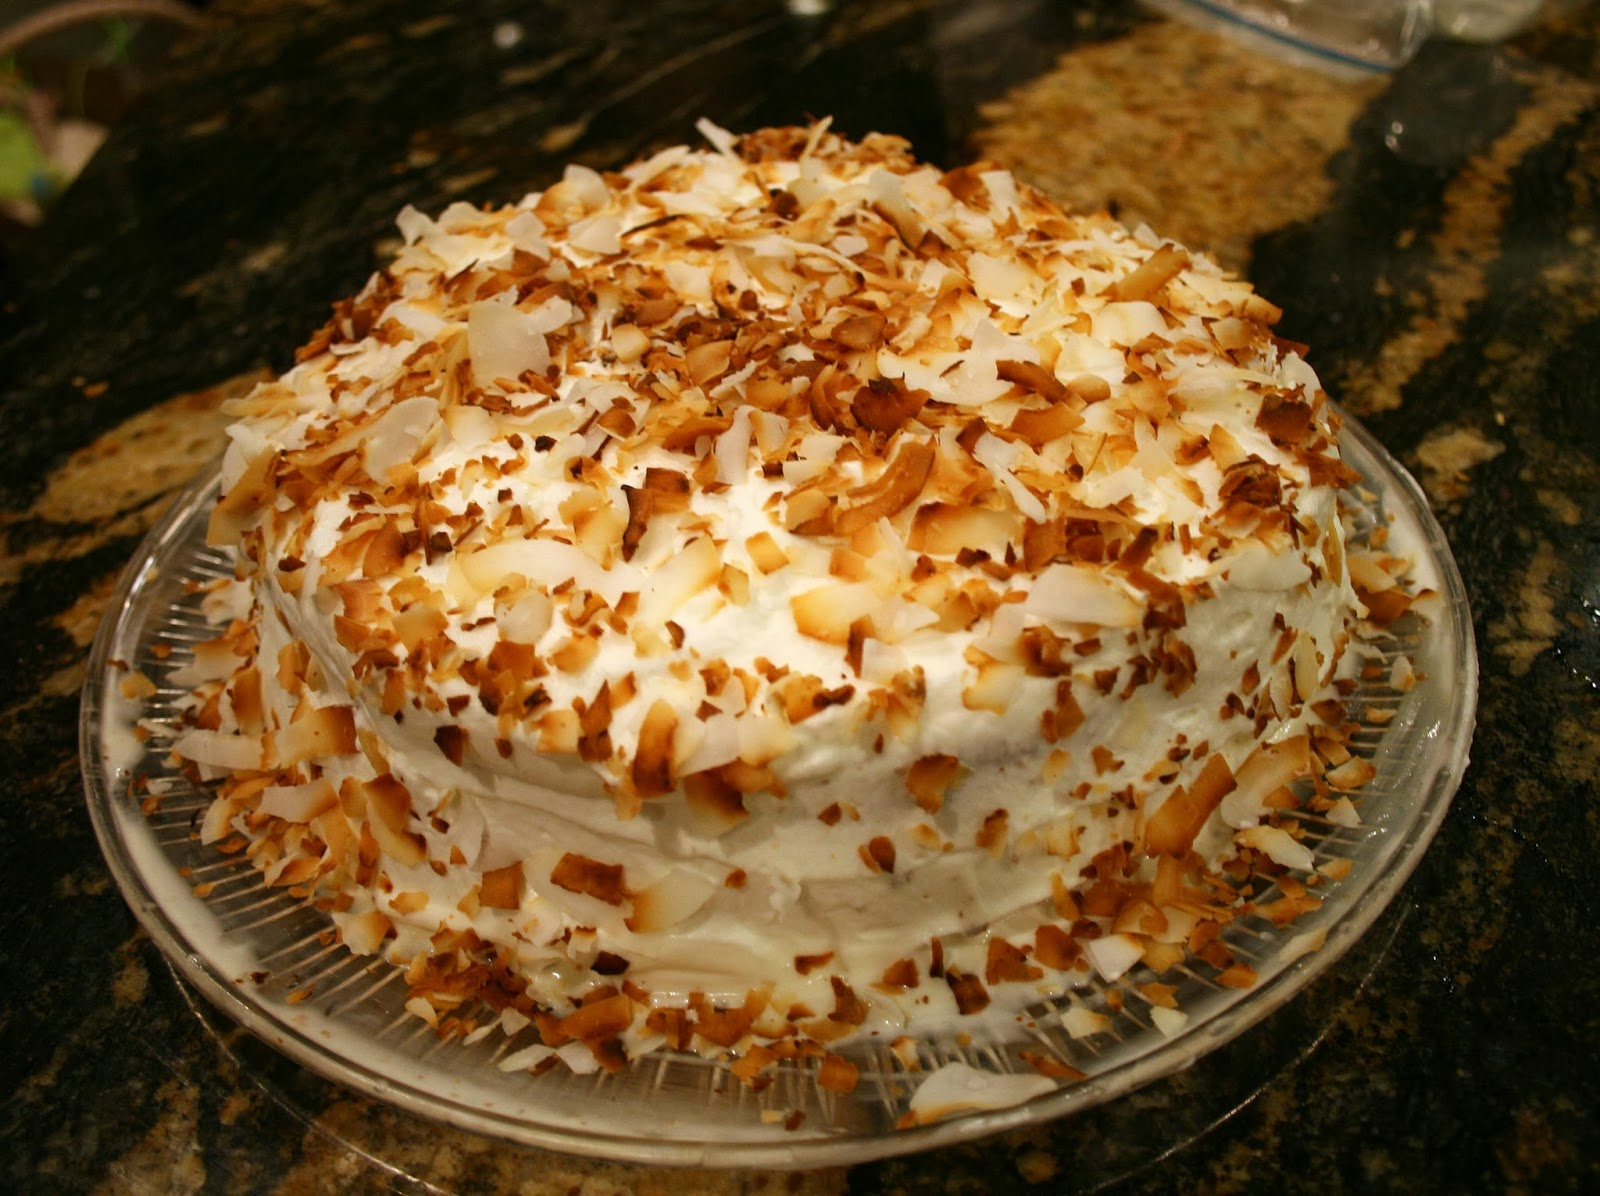 ... Daring Bakers: Chocolate Coconut Pastel de Tres Leches (3 Milk Cake